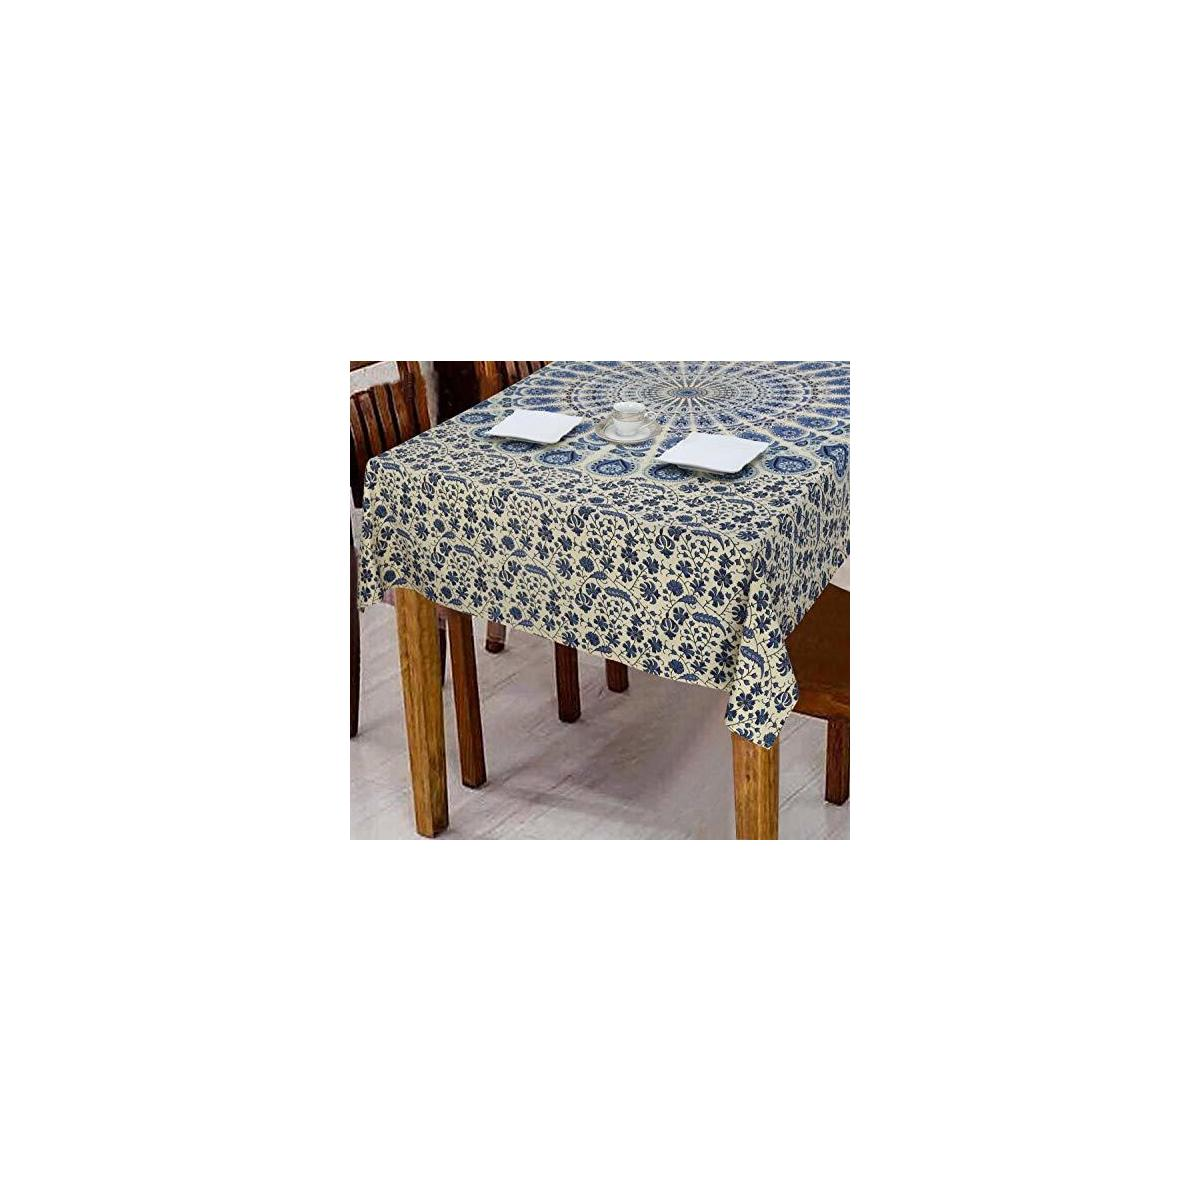 Table Cloth Cotton Linen Dust Proof Oblong Table Cover for Kitchen Dinning Tabletop Decoration (Blue Mandala)